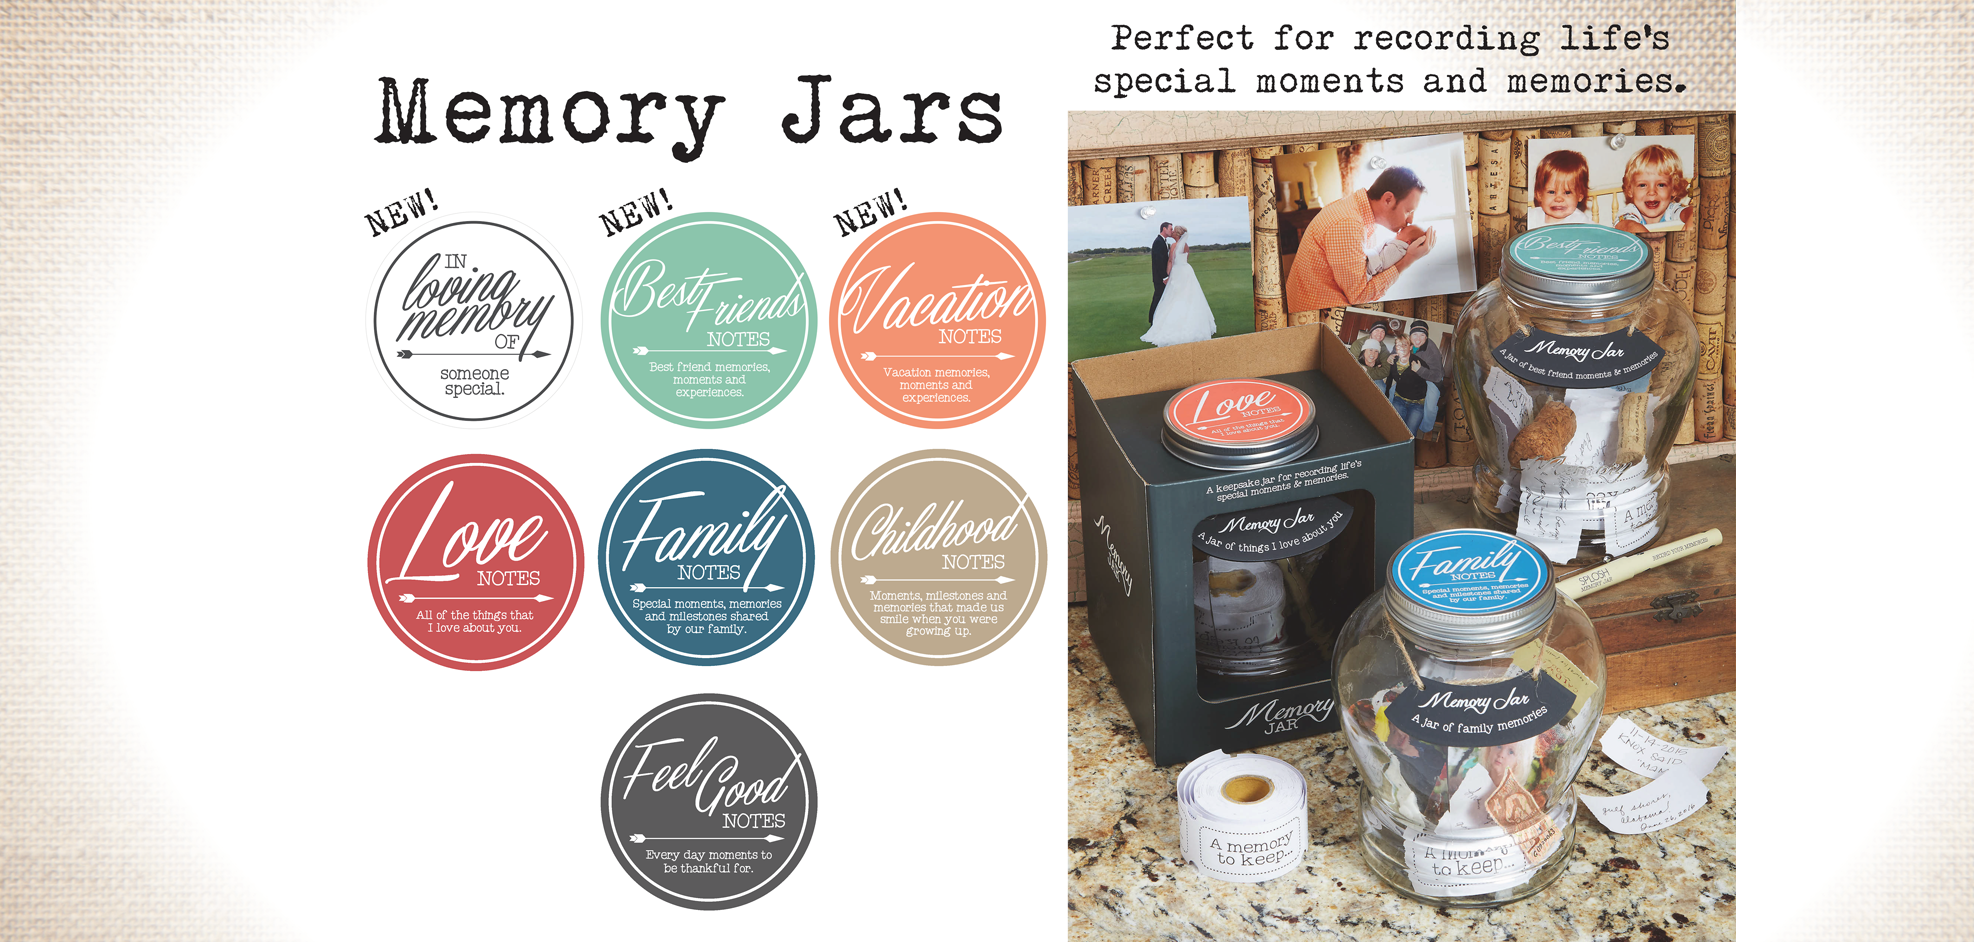 Top Shelf Glasses - Memory Jars 2021